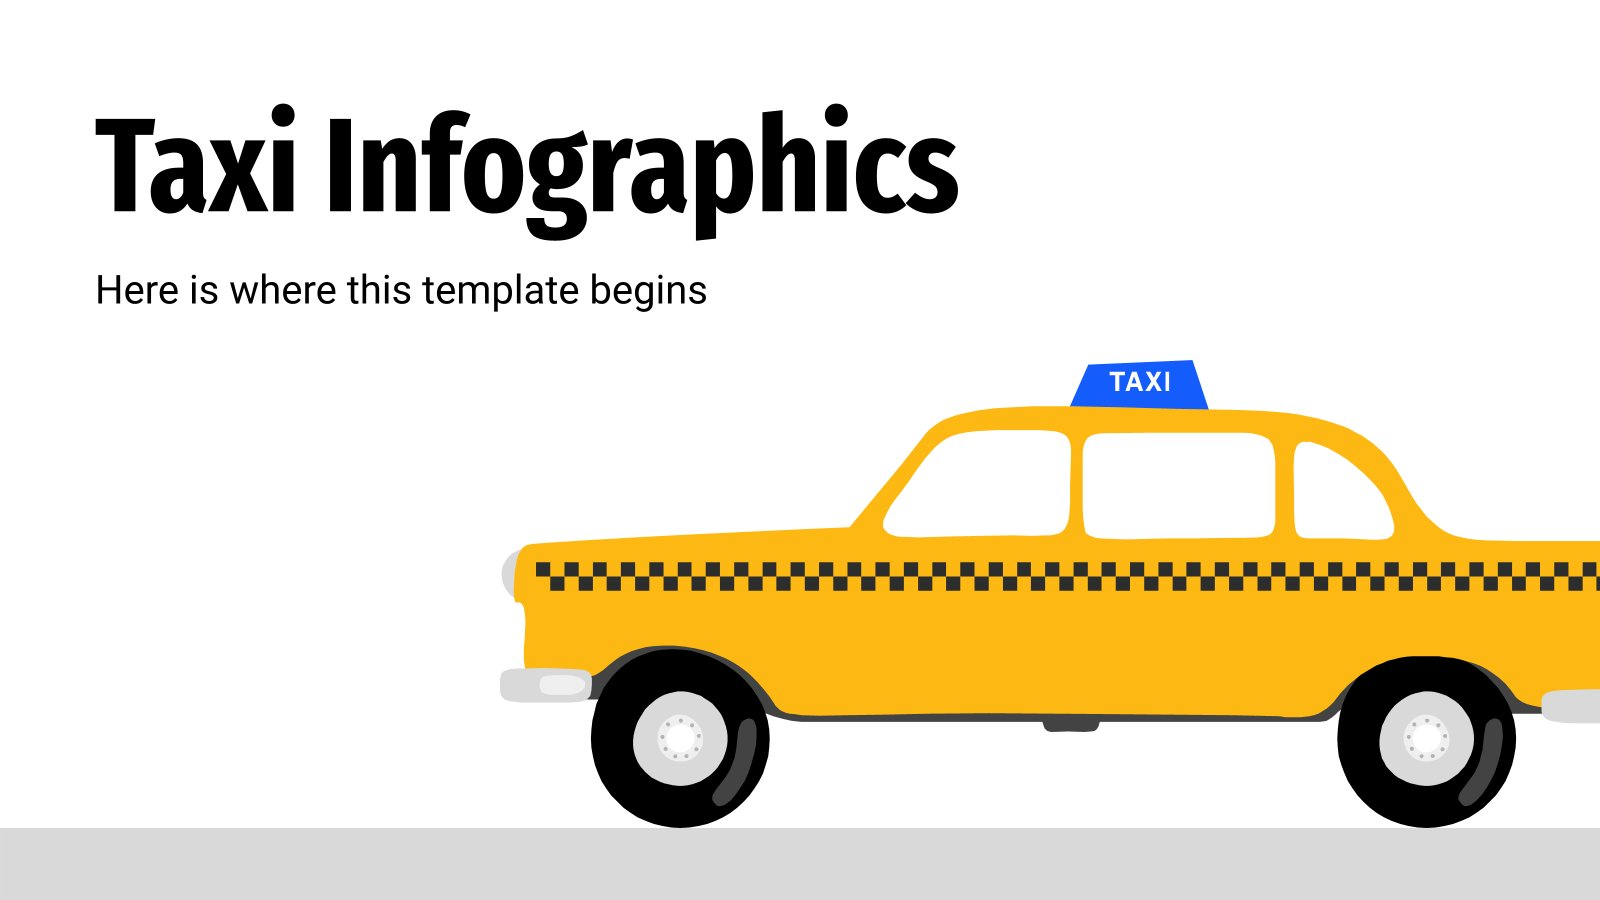 Taxi Infographics presentation template